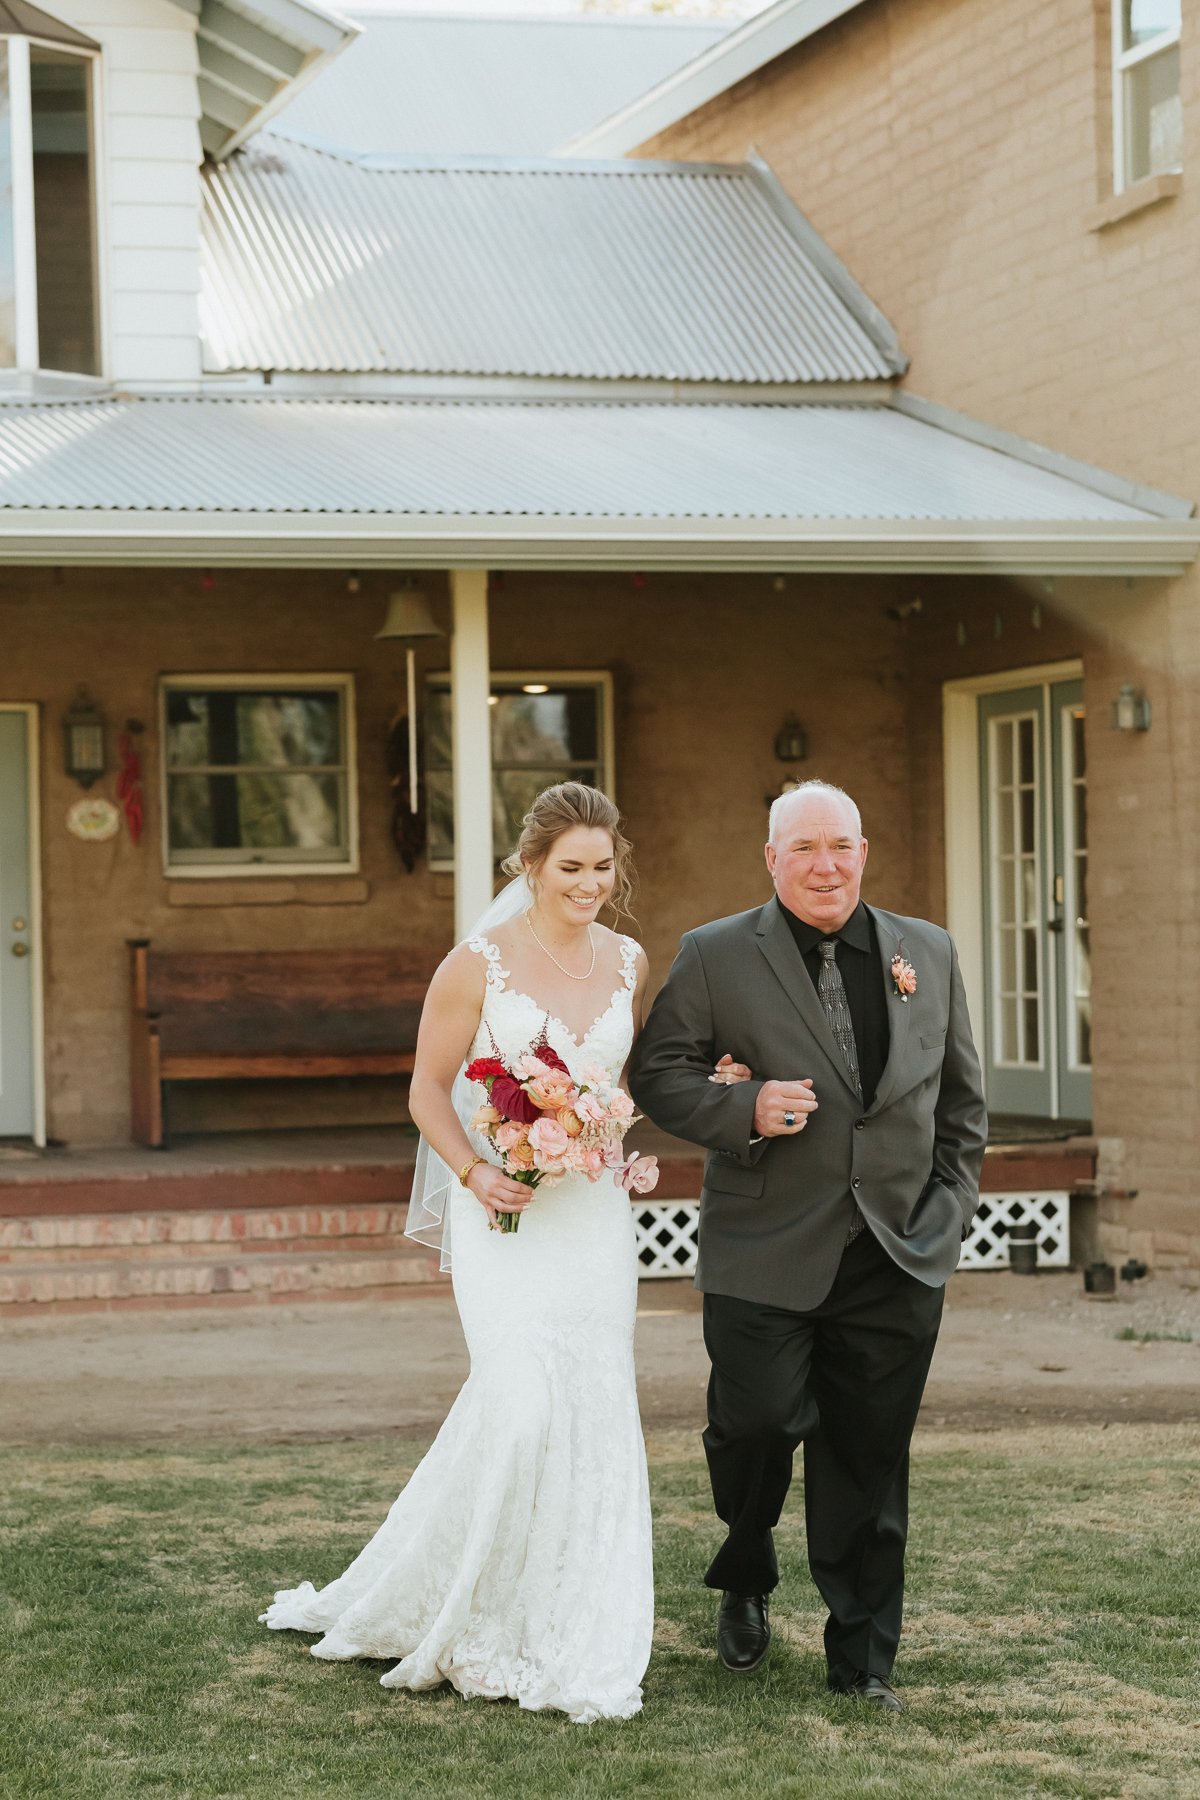 Megan Claire Photography | Arizona Elopement and Intimate Wedding Photographer.  Faith filled elopement at St. Ann's Chapel in Tucson, Arizona. Bride walking down the aisle